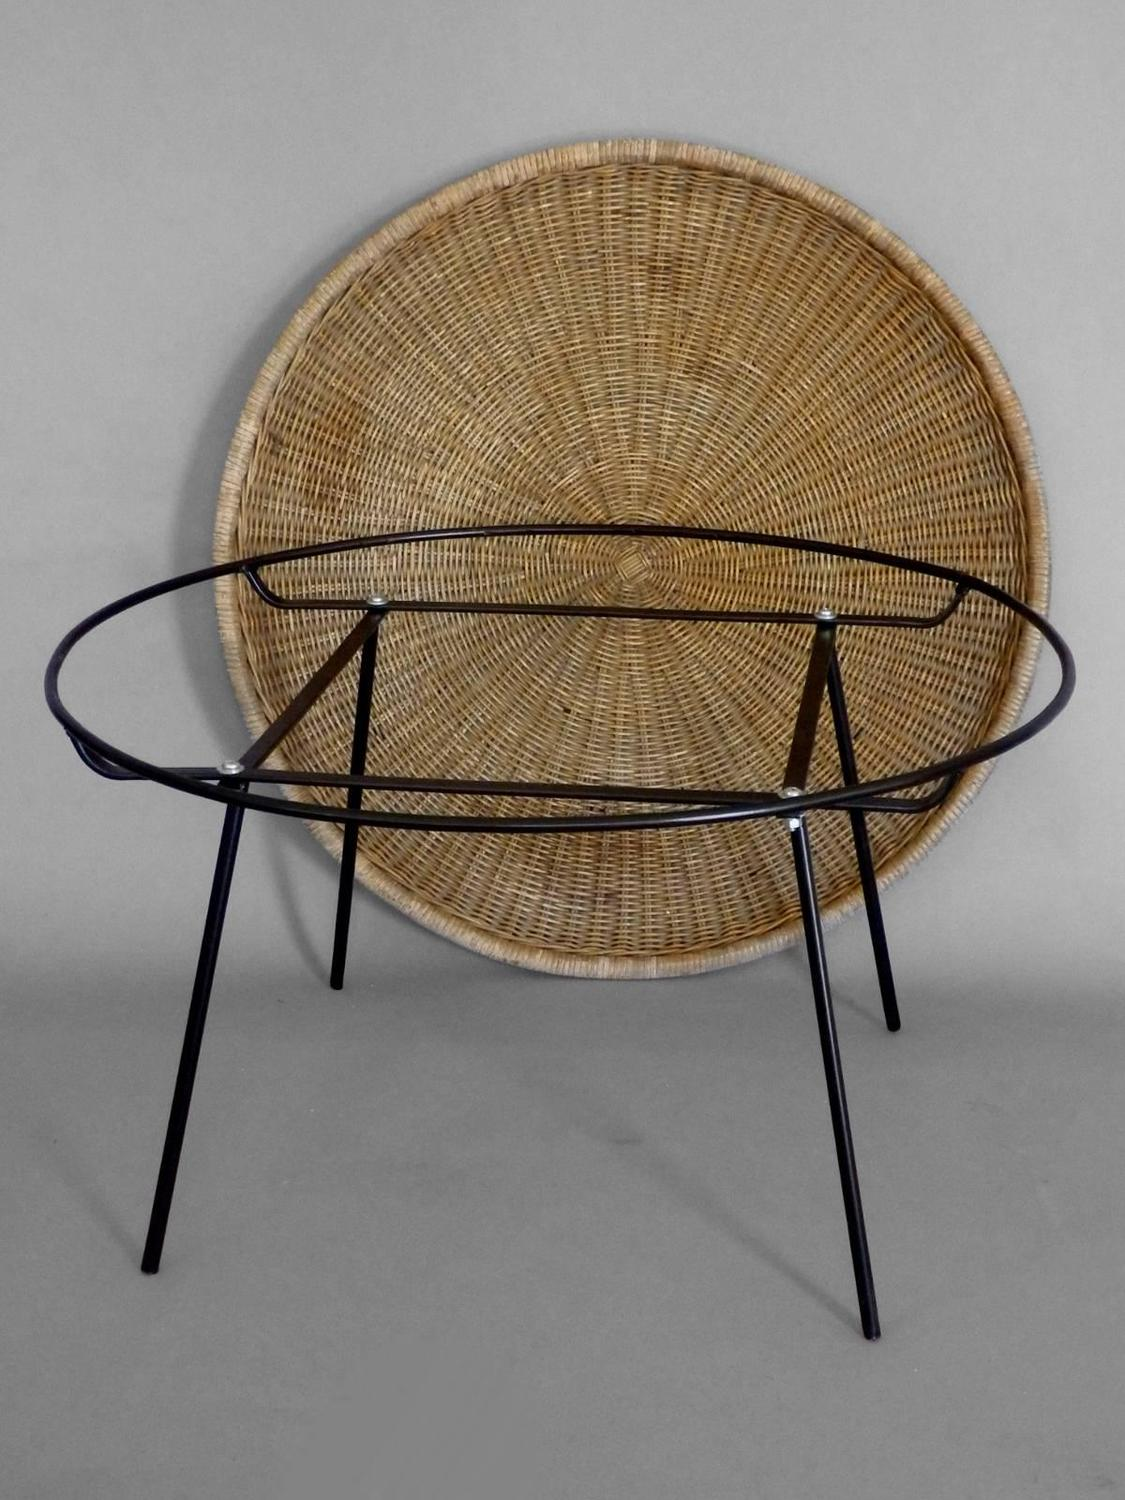 Rattan on wrought iron catch all coffee table for sale at 1stdibs Coffee table with wicker baskets